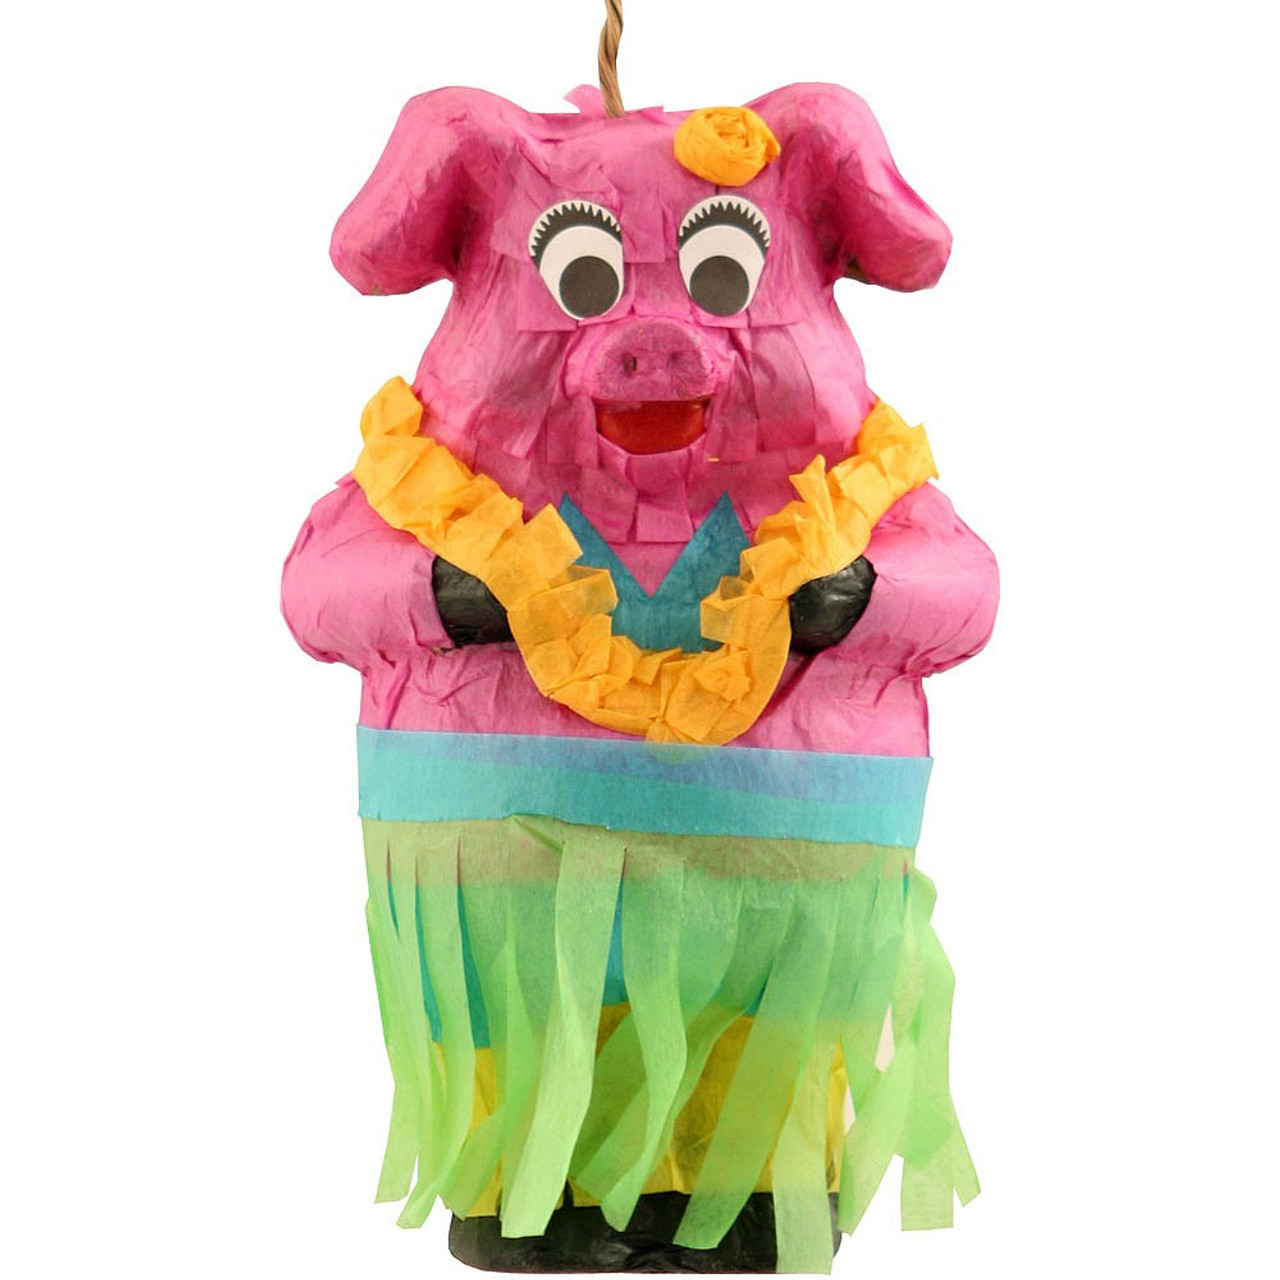 Piggy Pinata With Treats - Foraging Toy for Parrots